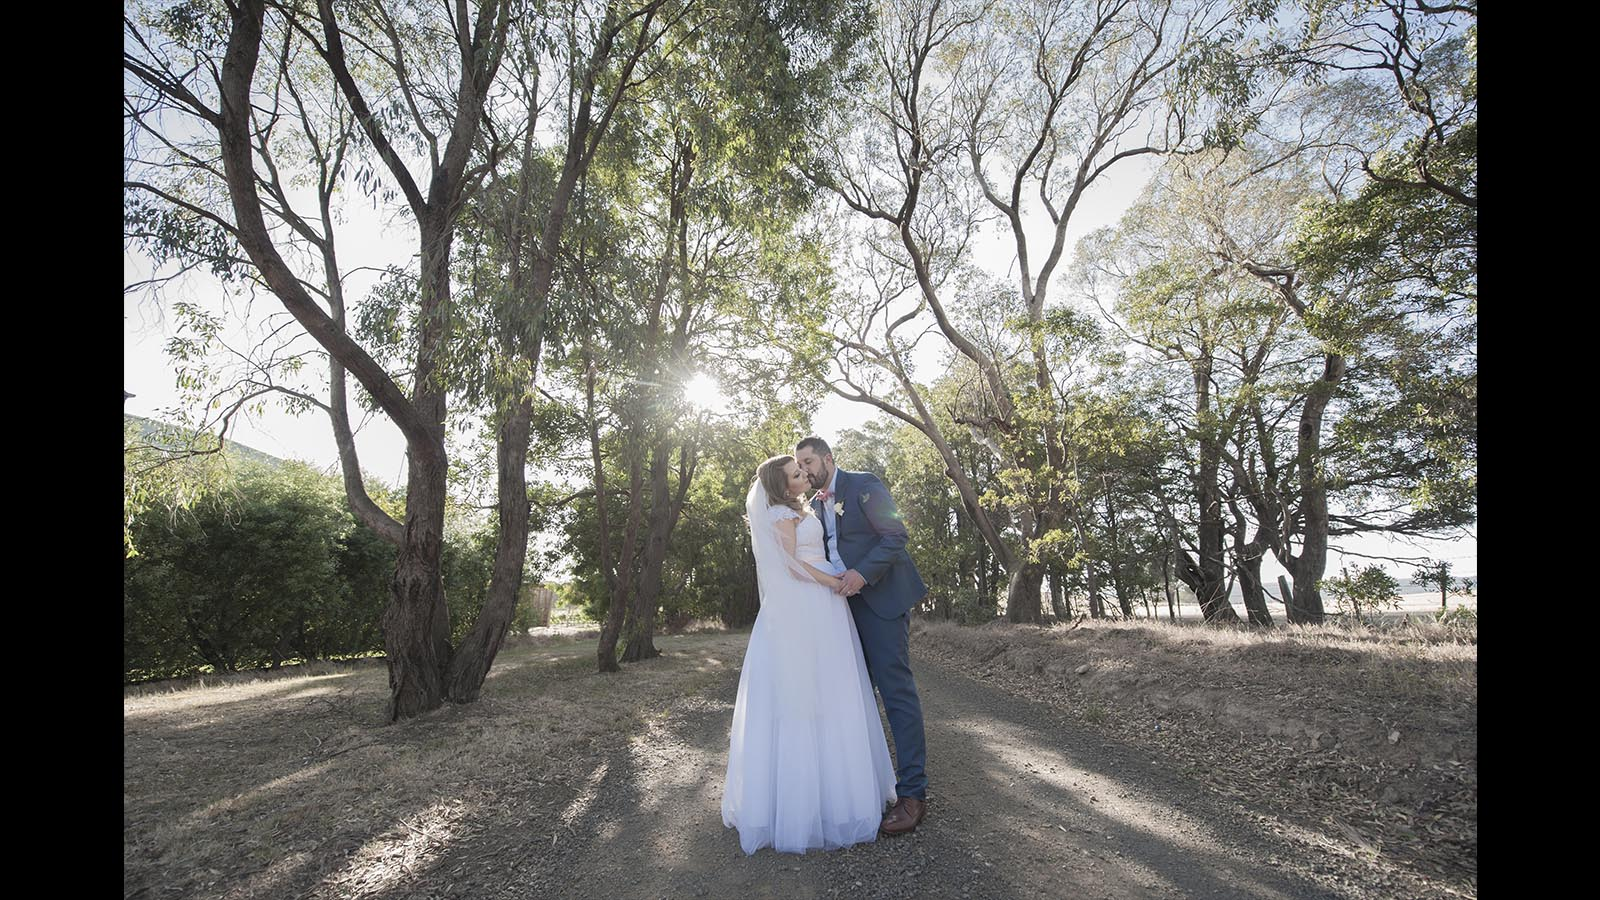 Glen Erin at Lancefield, Vineyard wedding couple